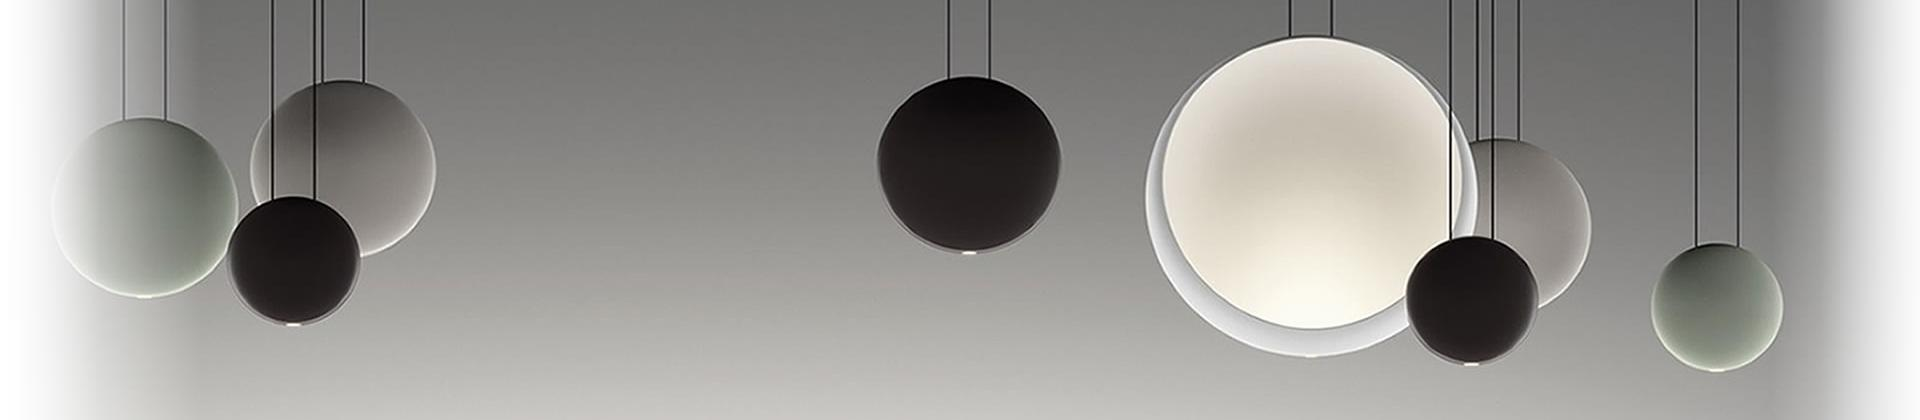 Lampes suspendues de conception Rhythm per Vibia